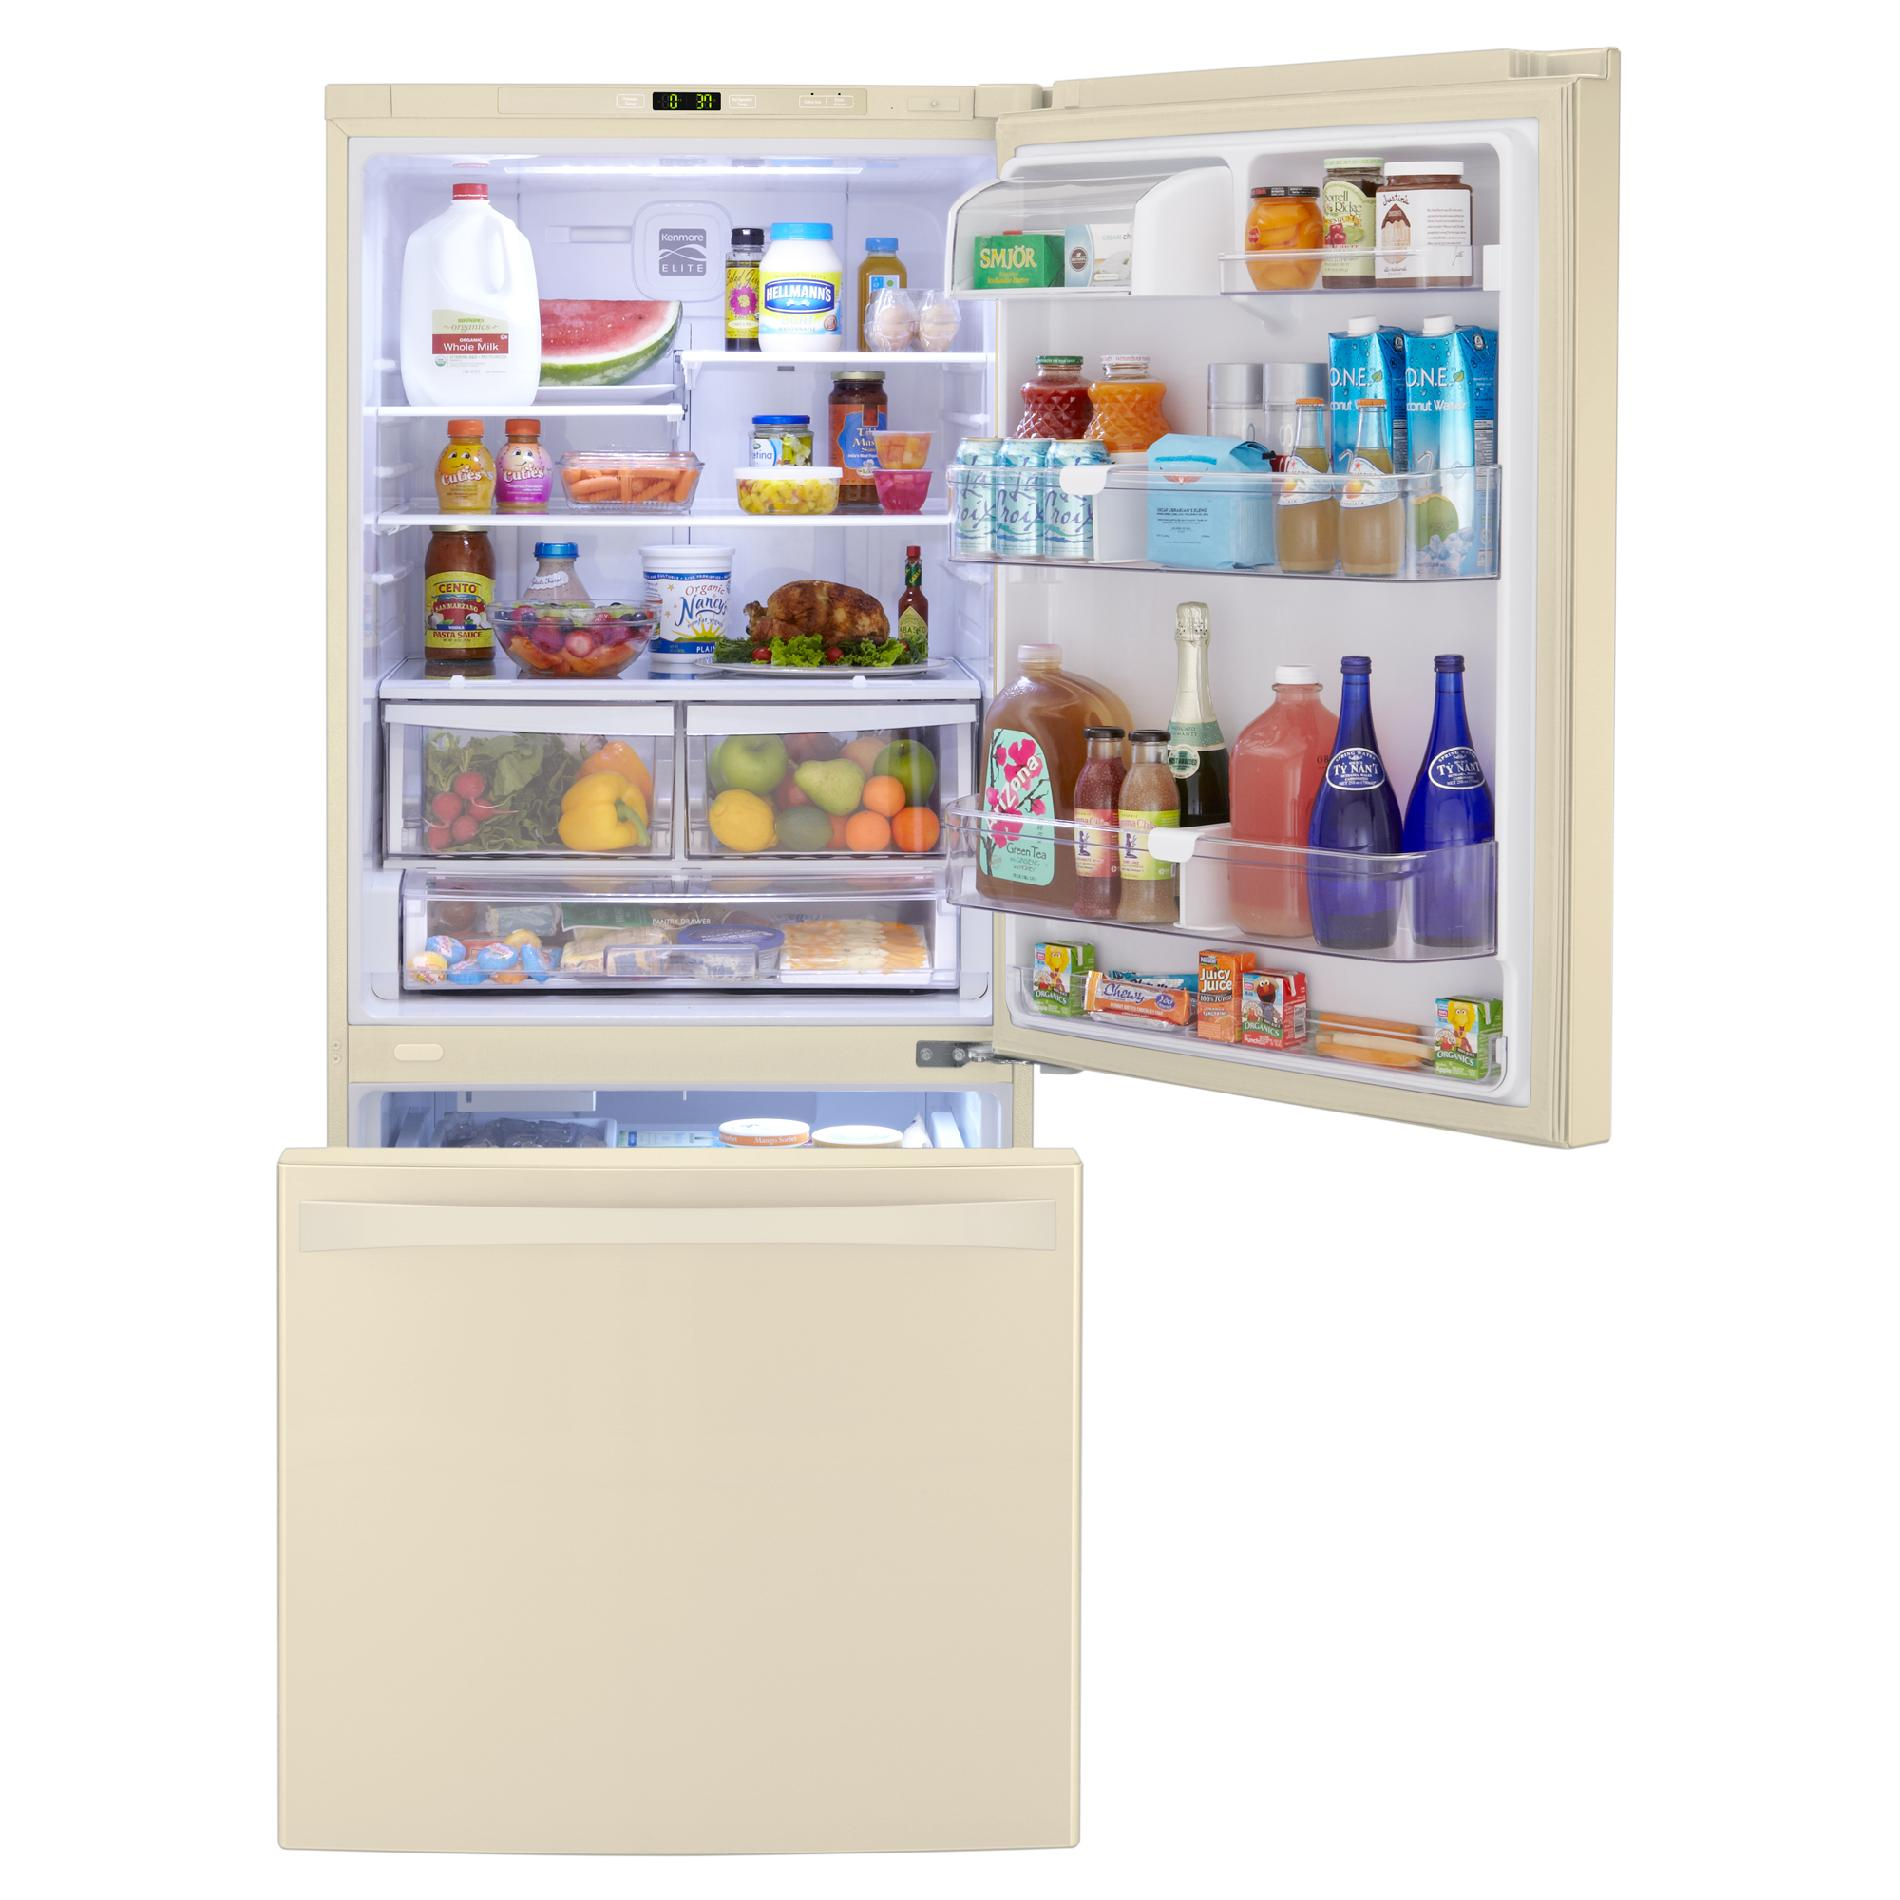 Kenmore Elite 79024 22.1 cu. ft. Bottom-Freezer Refrigerator – Bisque